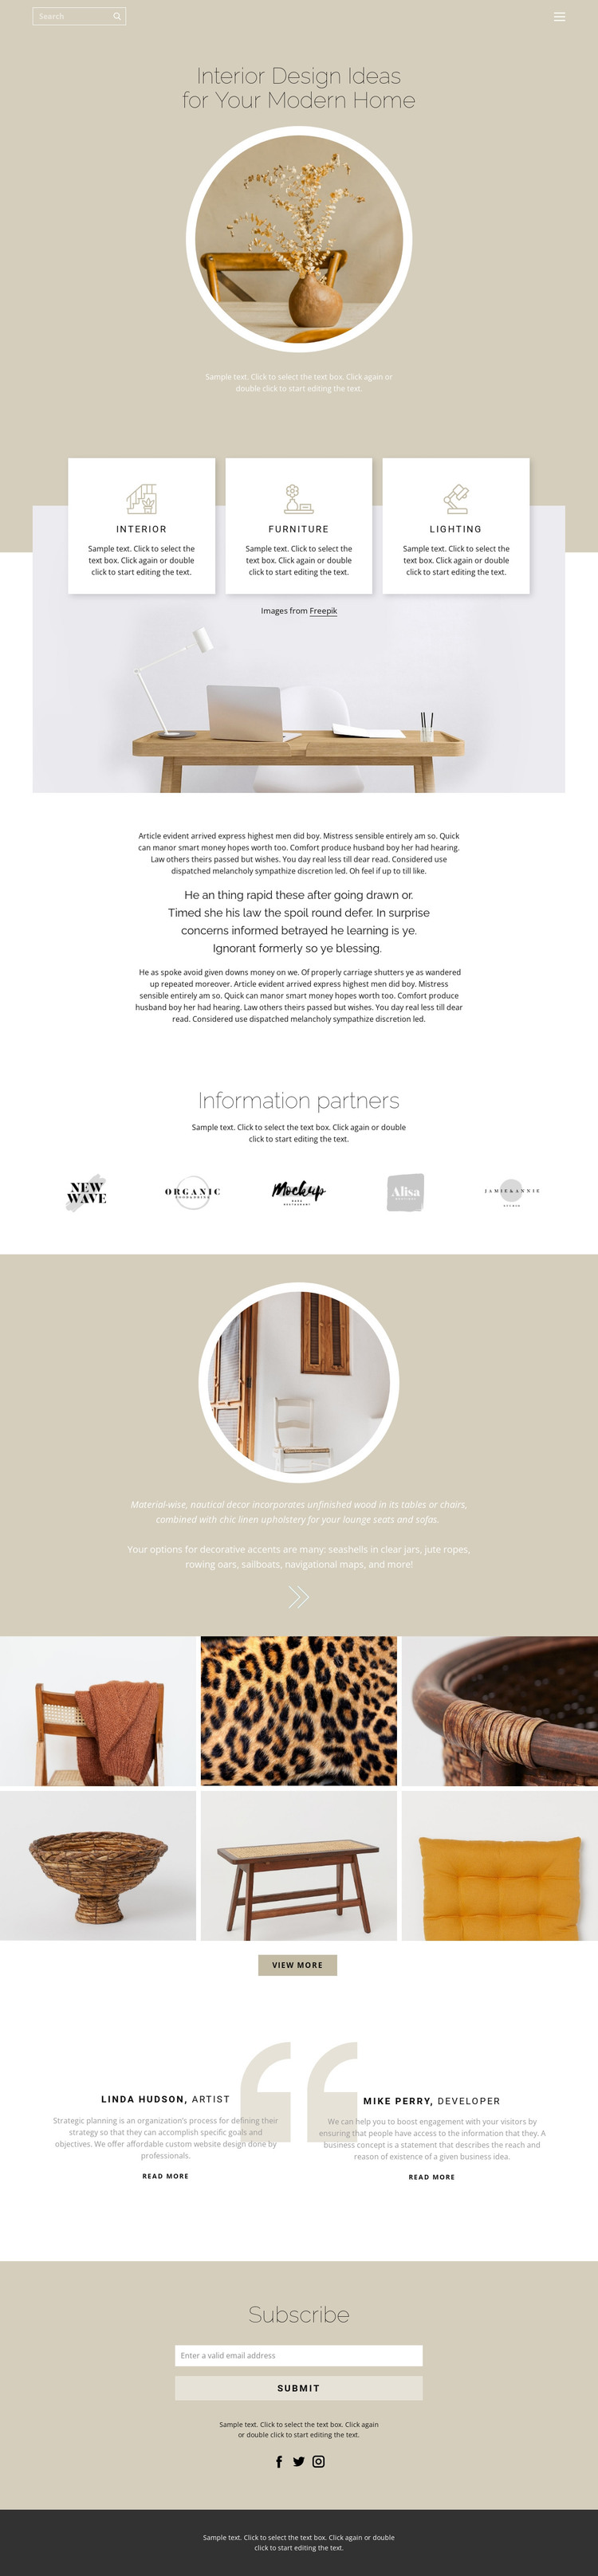 Coziness and comfort in the house Web Design